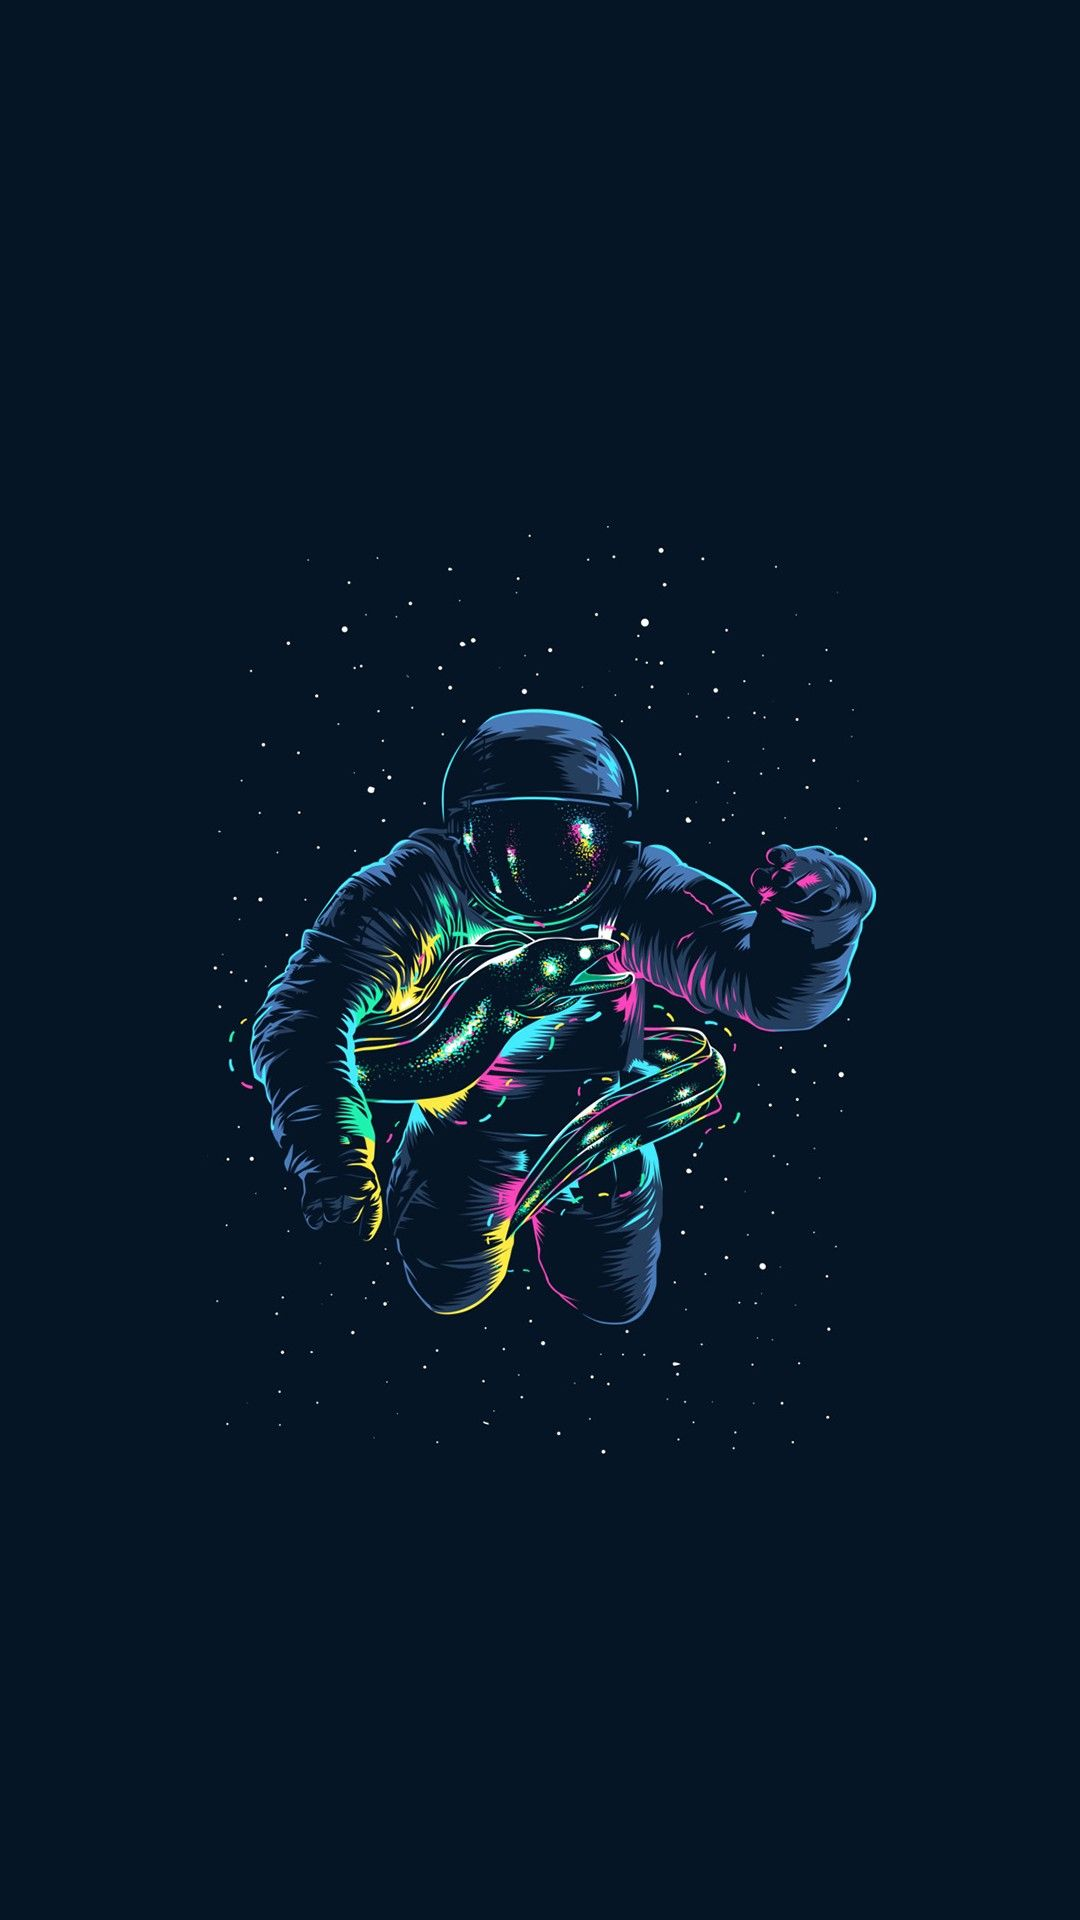 In Youth It Was A Way I Had To Do My Best To Please And Change With Every Passing Lad To Suit His The Trippy Wallpaper Astronaut Wallpaper Wallpaper Space